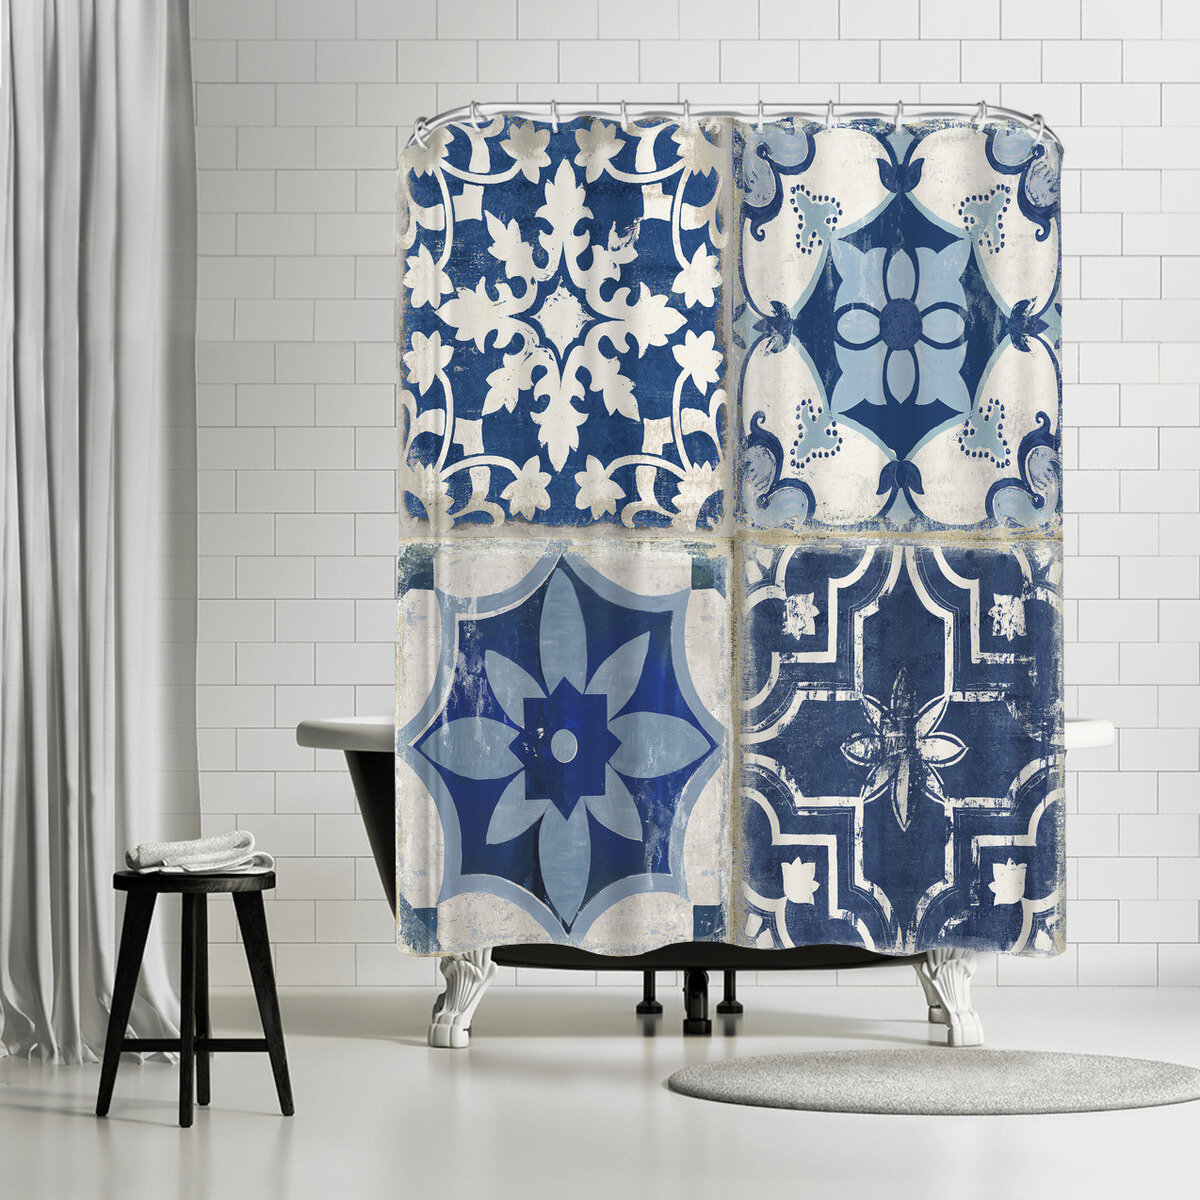 East Urban Home Pi Creative Art Mosaic Tile I Single Shower Curtain Wayfair